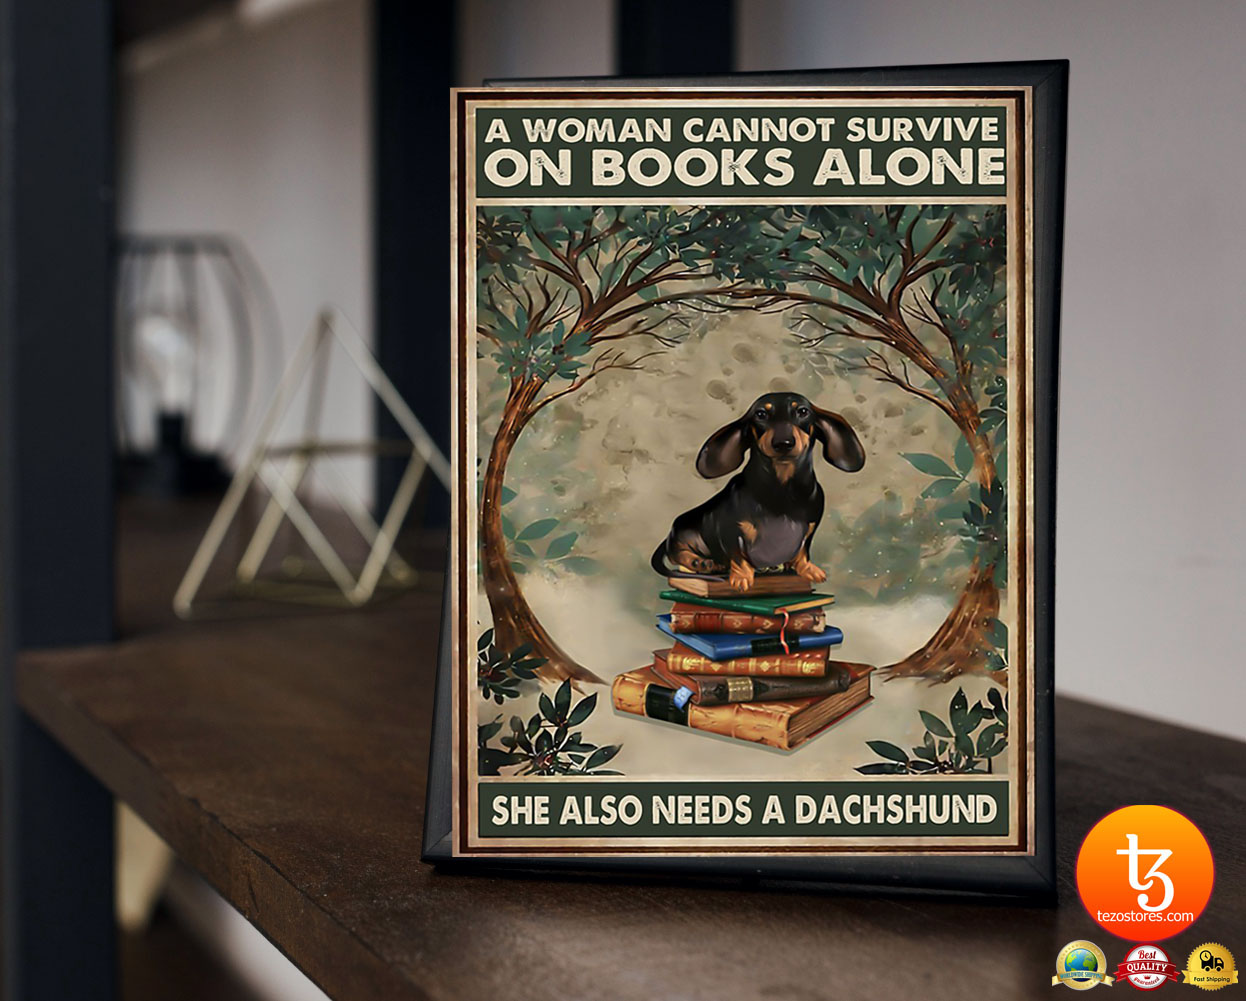 A-woman-cannot-survive-on-the-book-alone-she-need-dachshund-poster-23